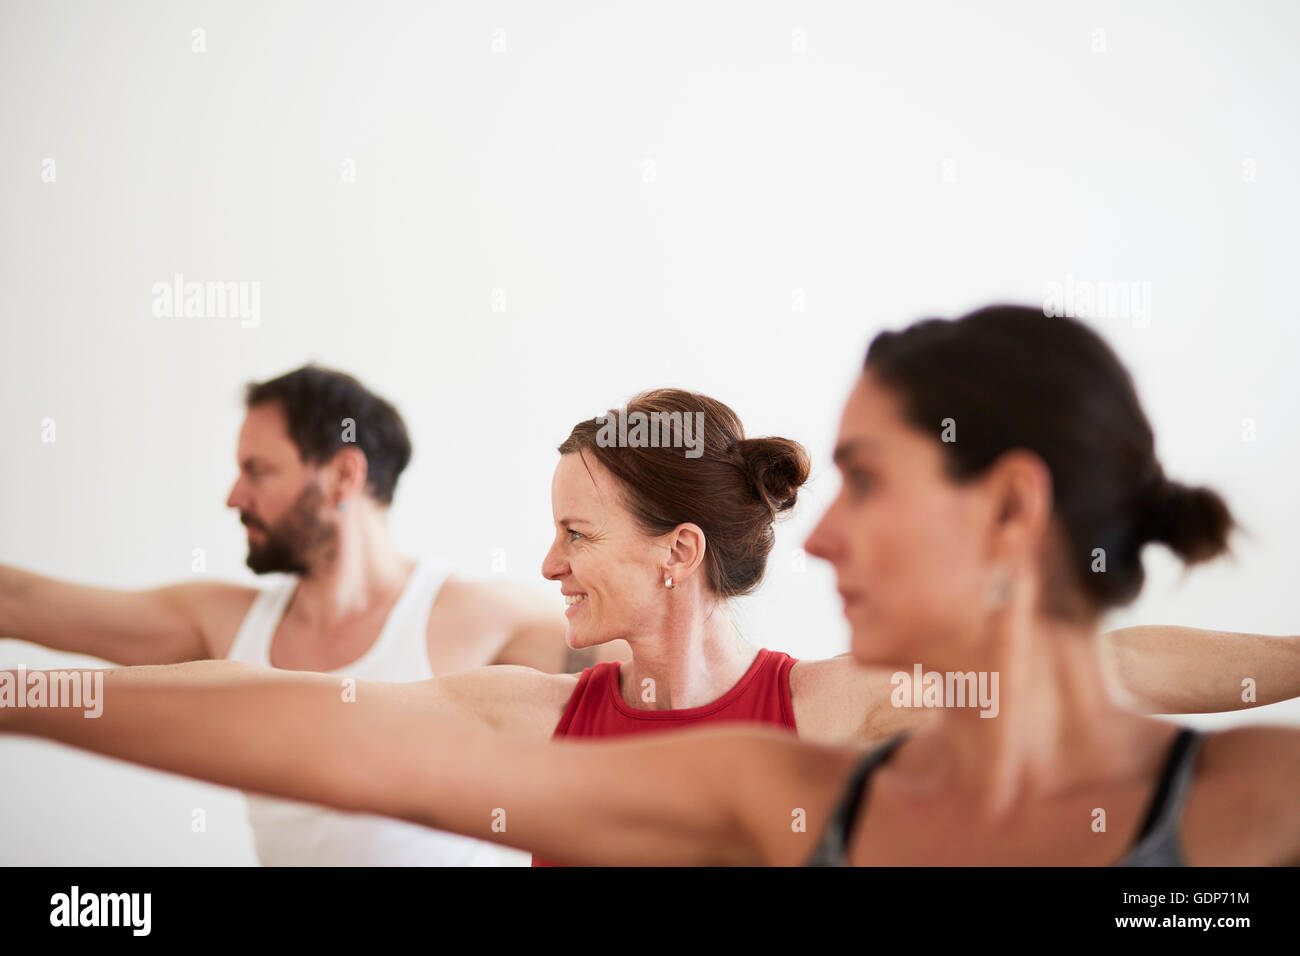 People in exercise studio arms open in yoga position - Stock Image